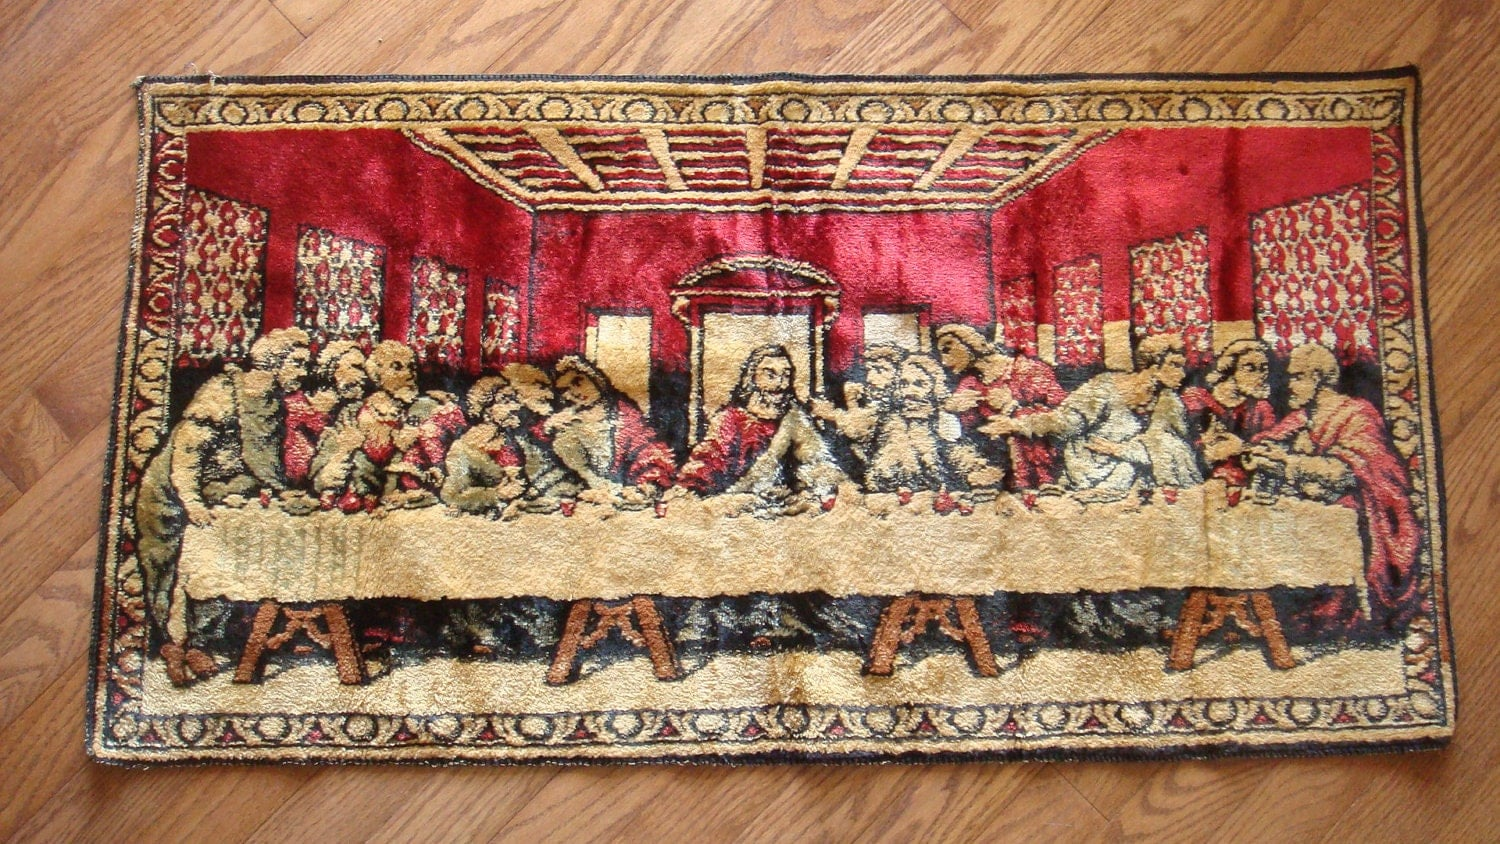 The Lord S Supper Wall Hanginge Last Supper V Wall Tapestry The